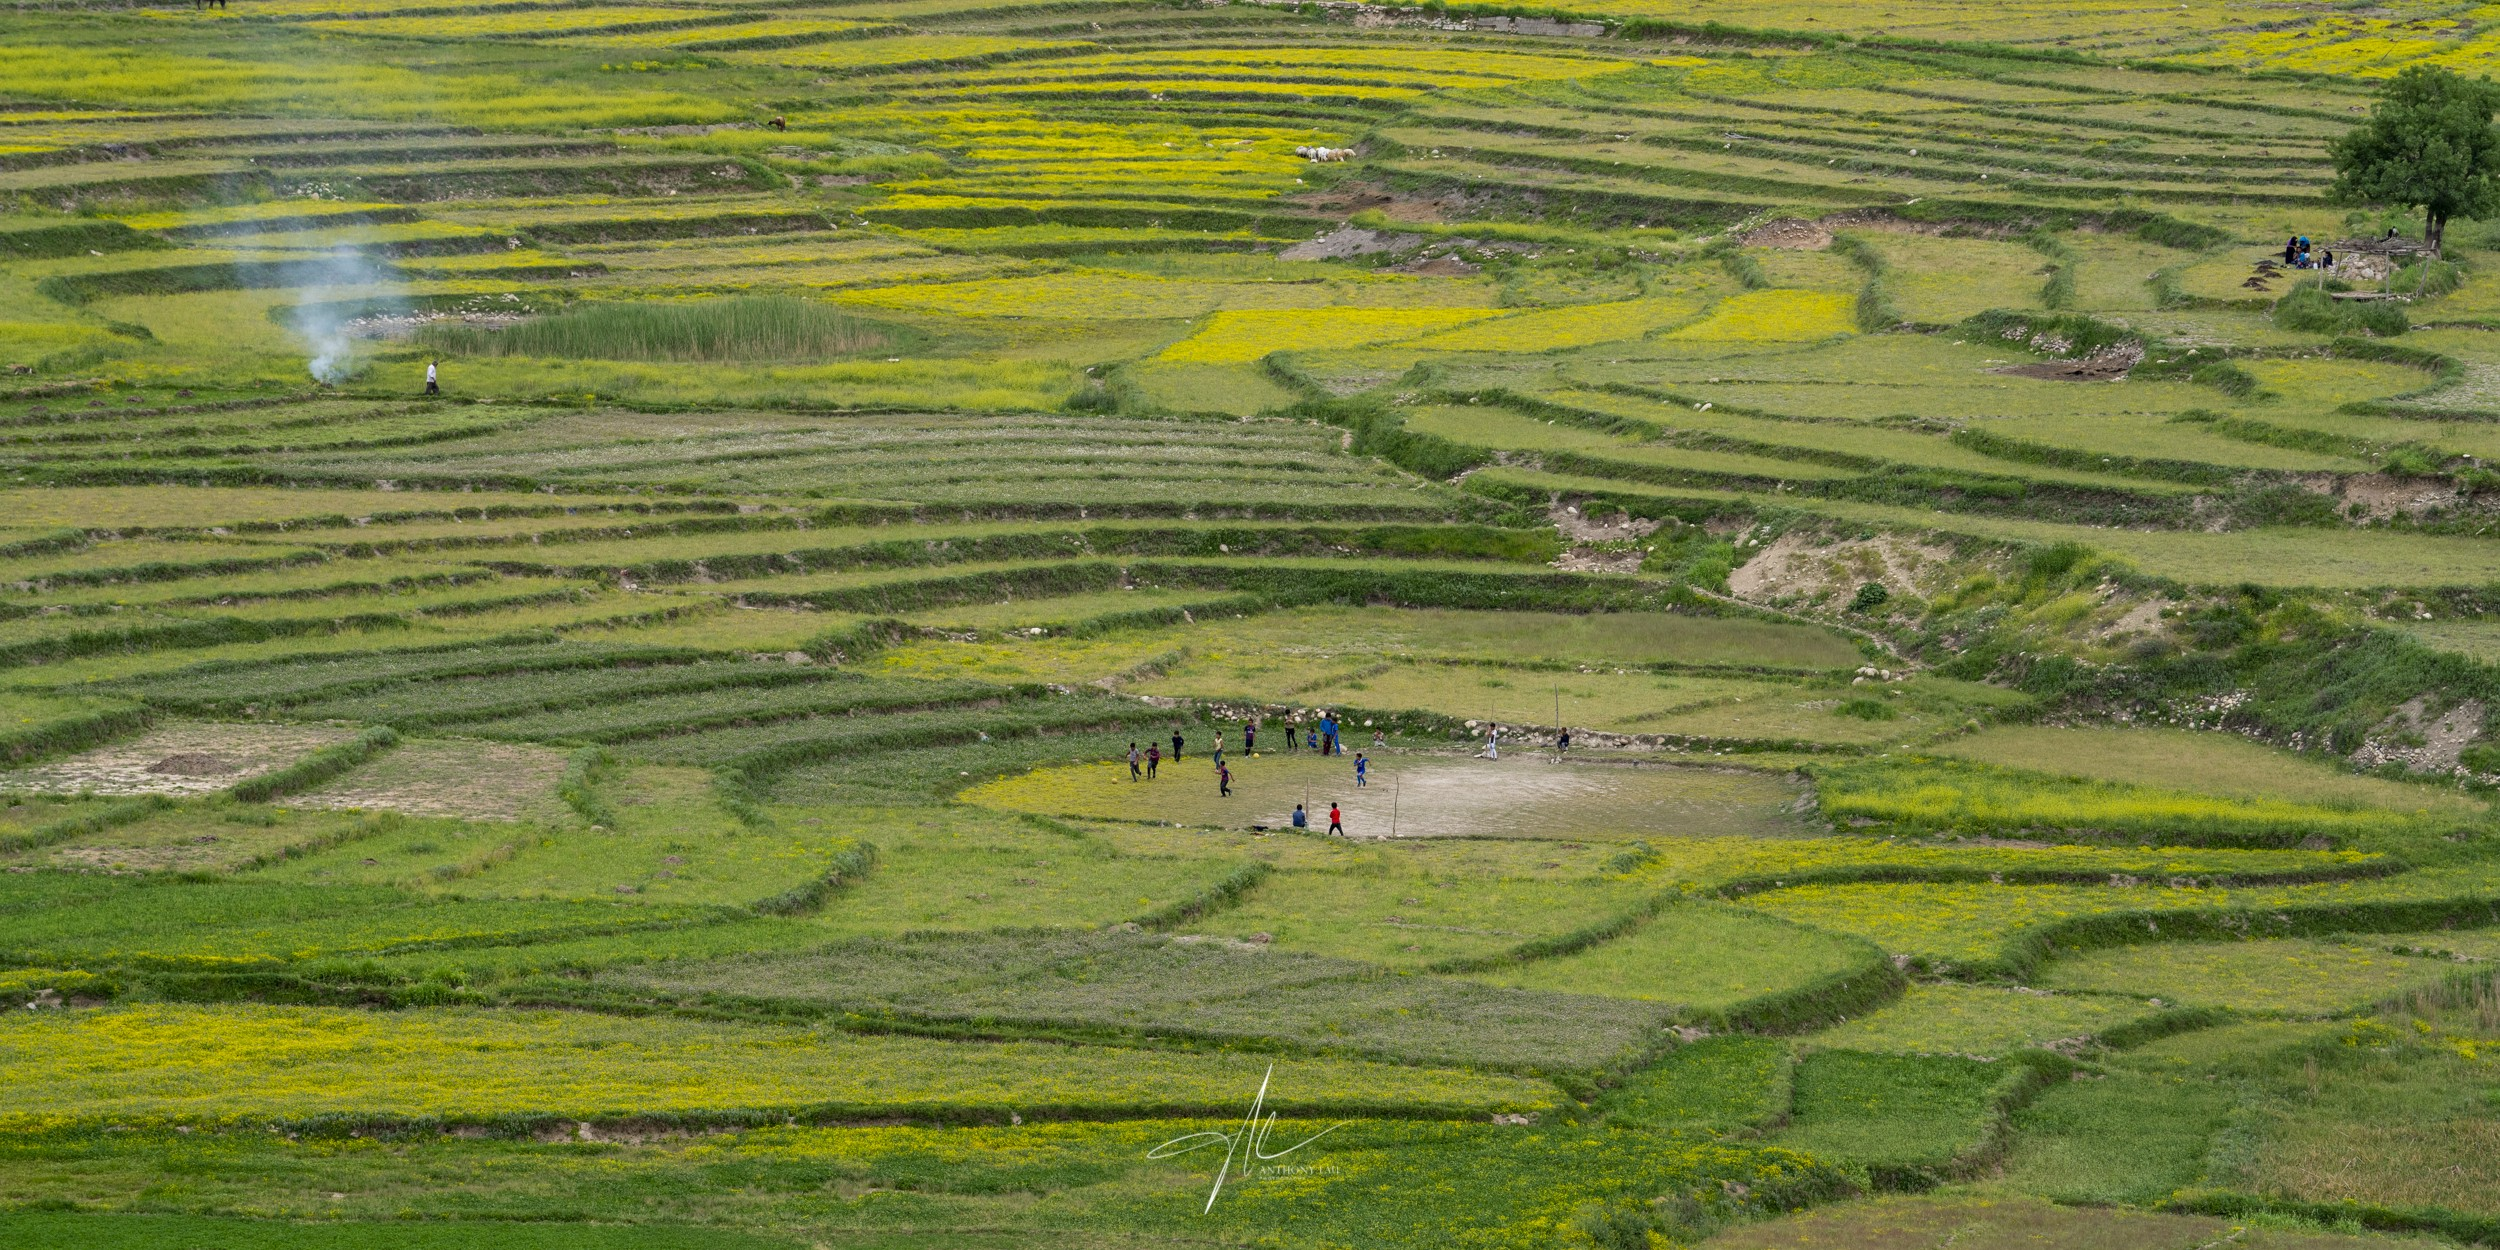 A group of local kids were playing a game of soccer between in the middle of the fields.